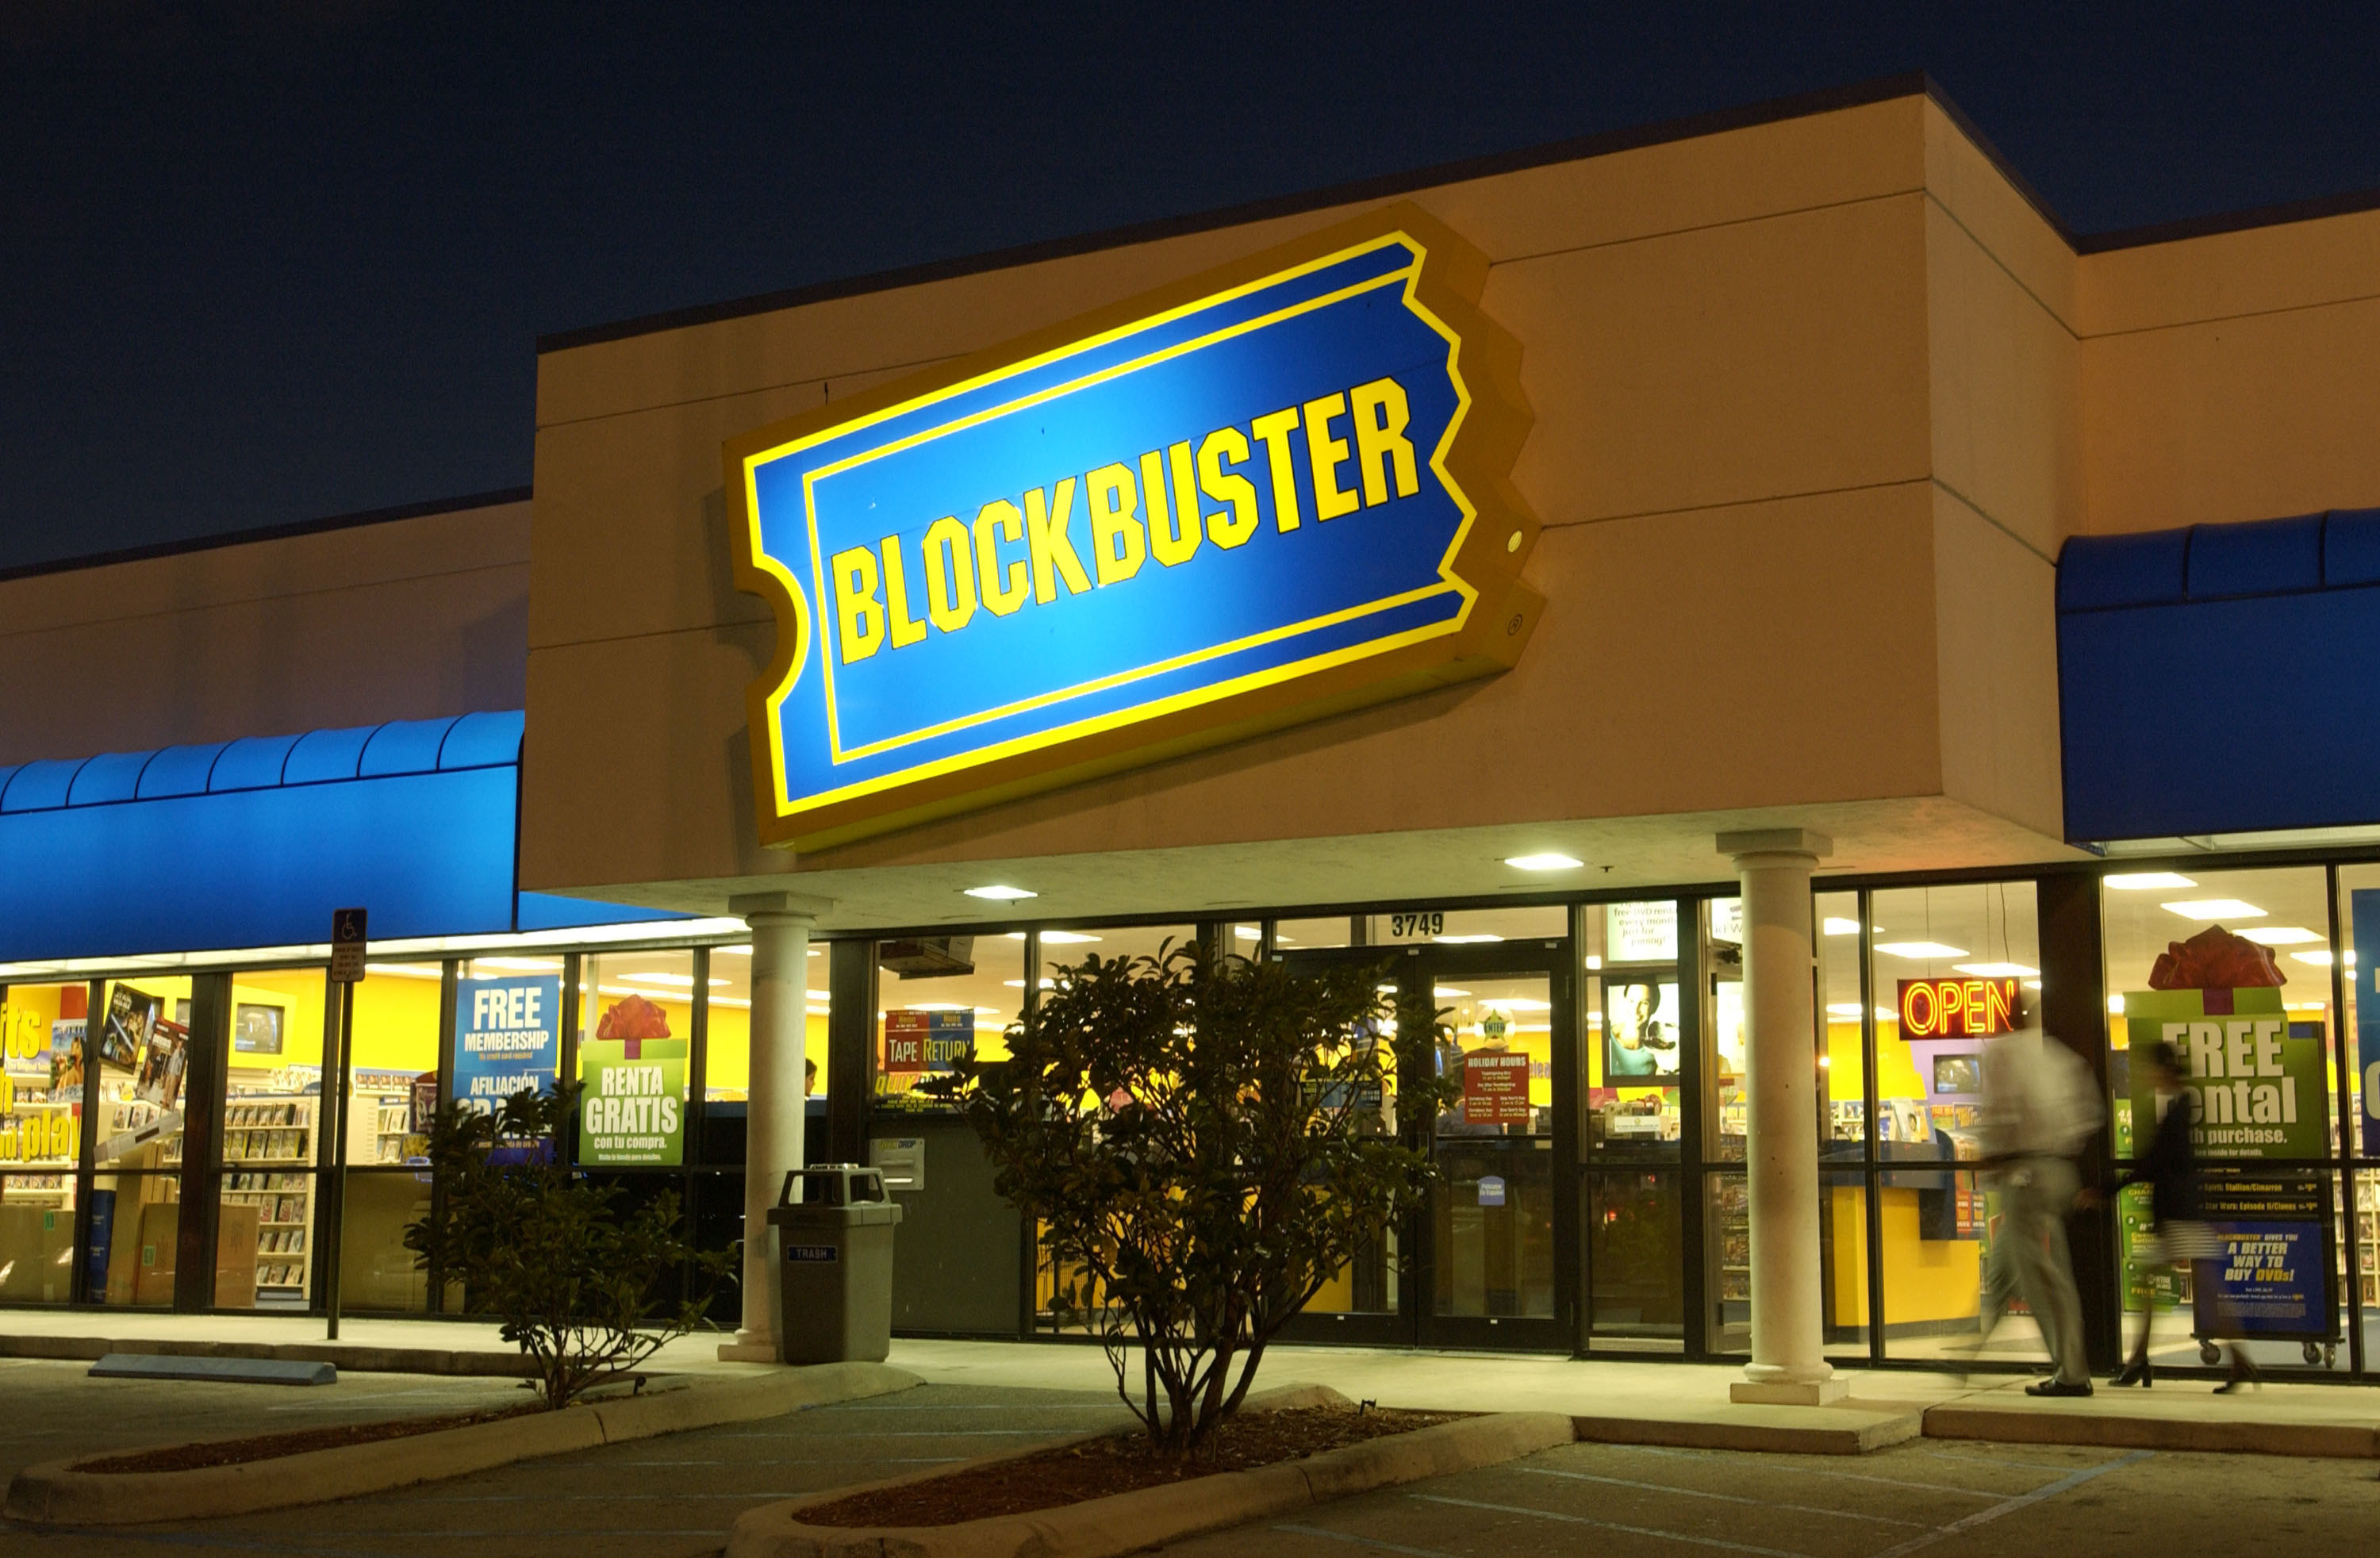 A photo of the outside of a Blockbuster Video store at night